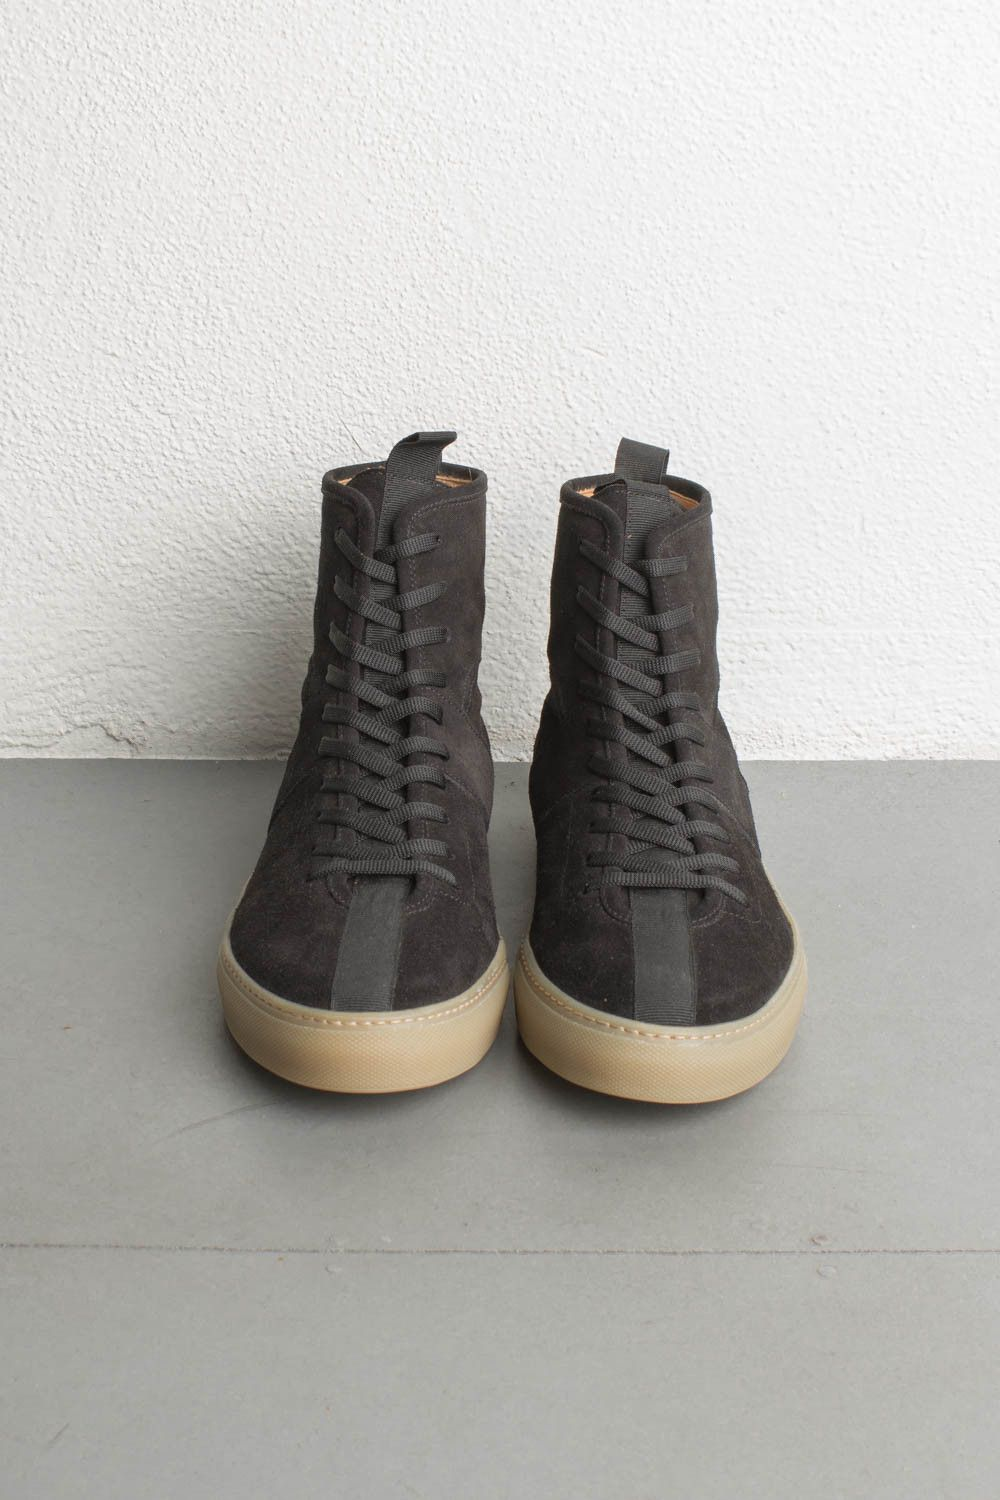 2f502ad4eaf33 high top roamer   black + gum designer streetwear high top sneakers